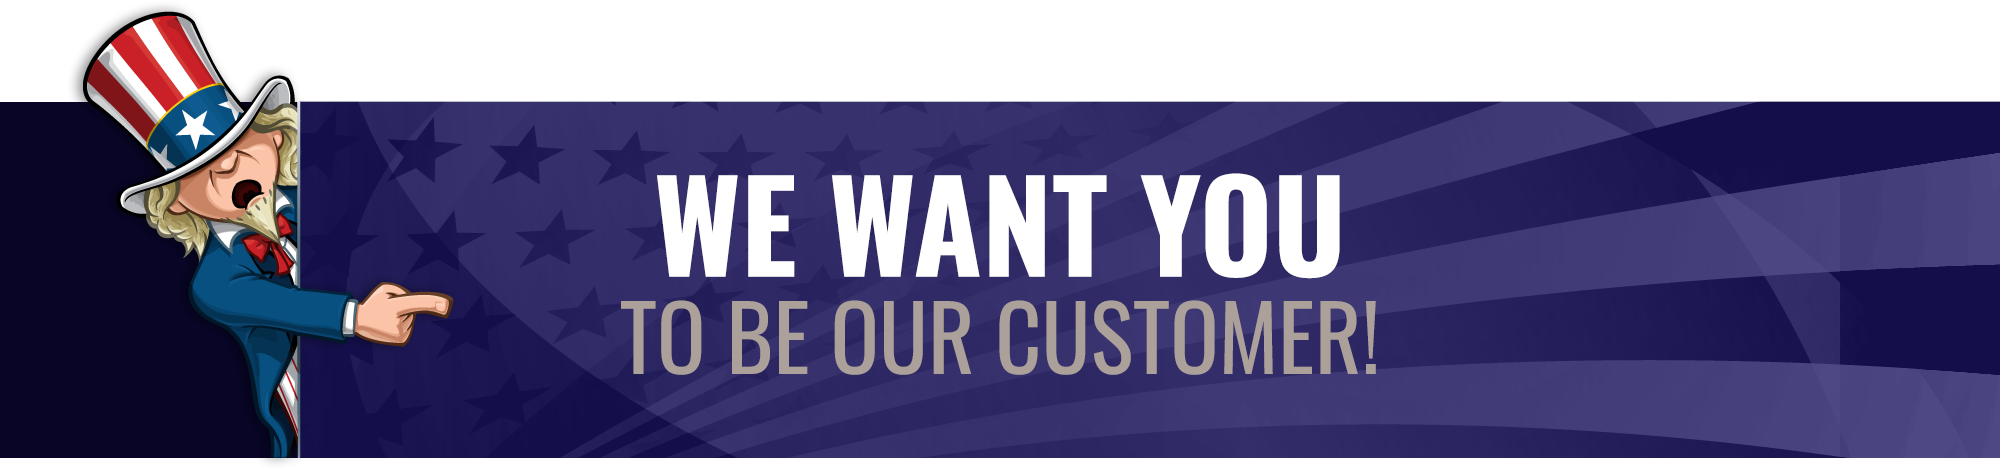 We Want You To Be Our Customer!